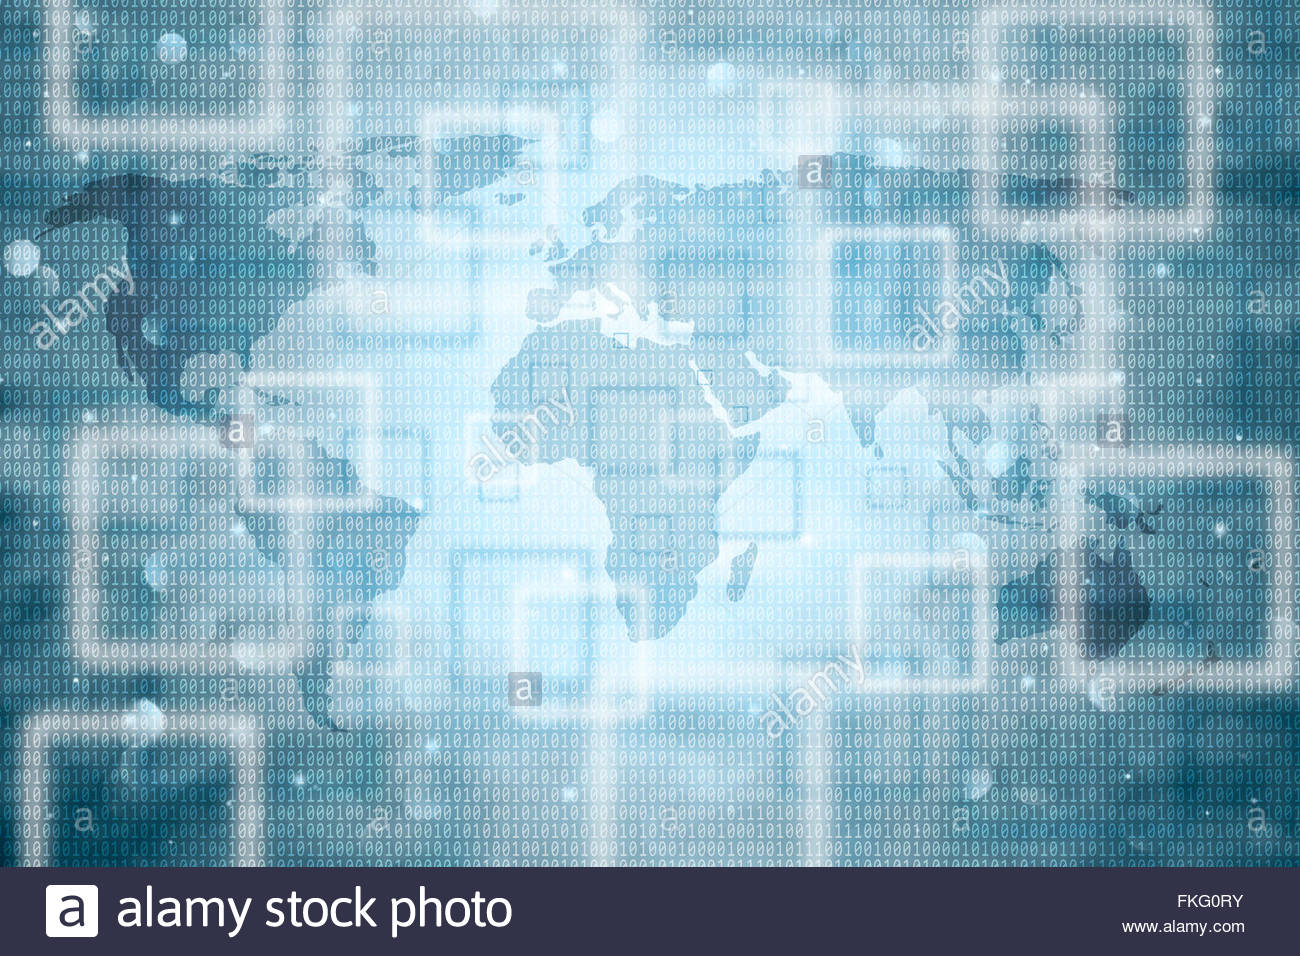 Creative world map abstract background stock photos creative world blurred abstract world map with binary numbers background conceptual world map with binary code background gumiabroncs Choice Image